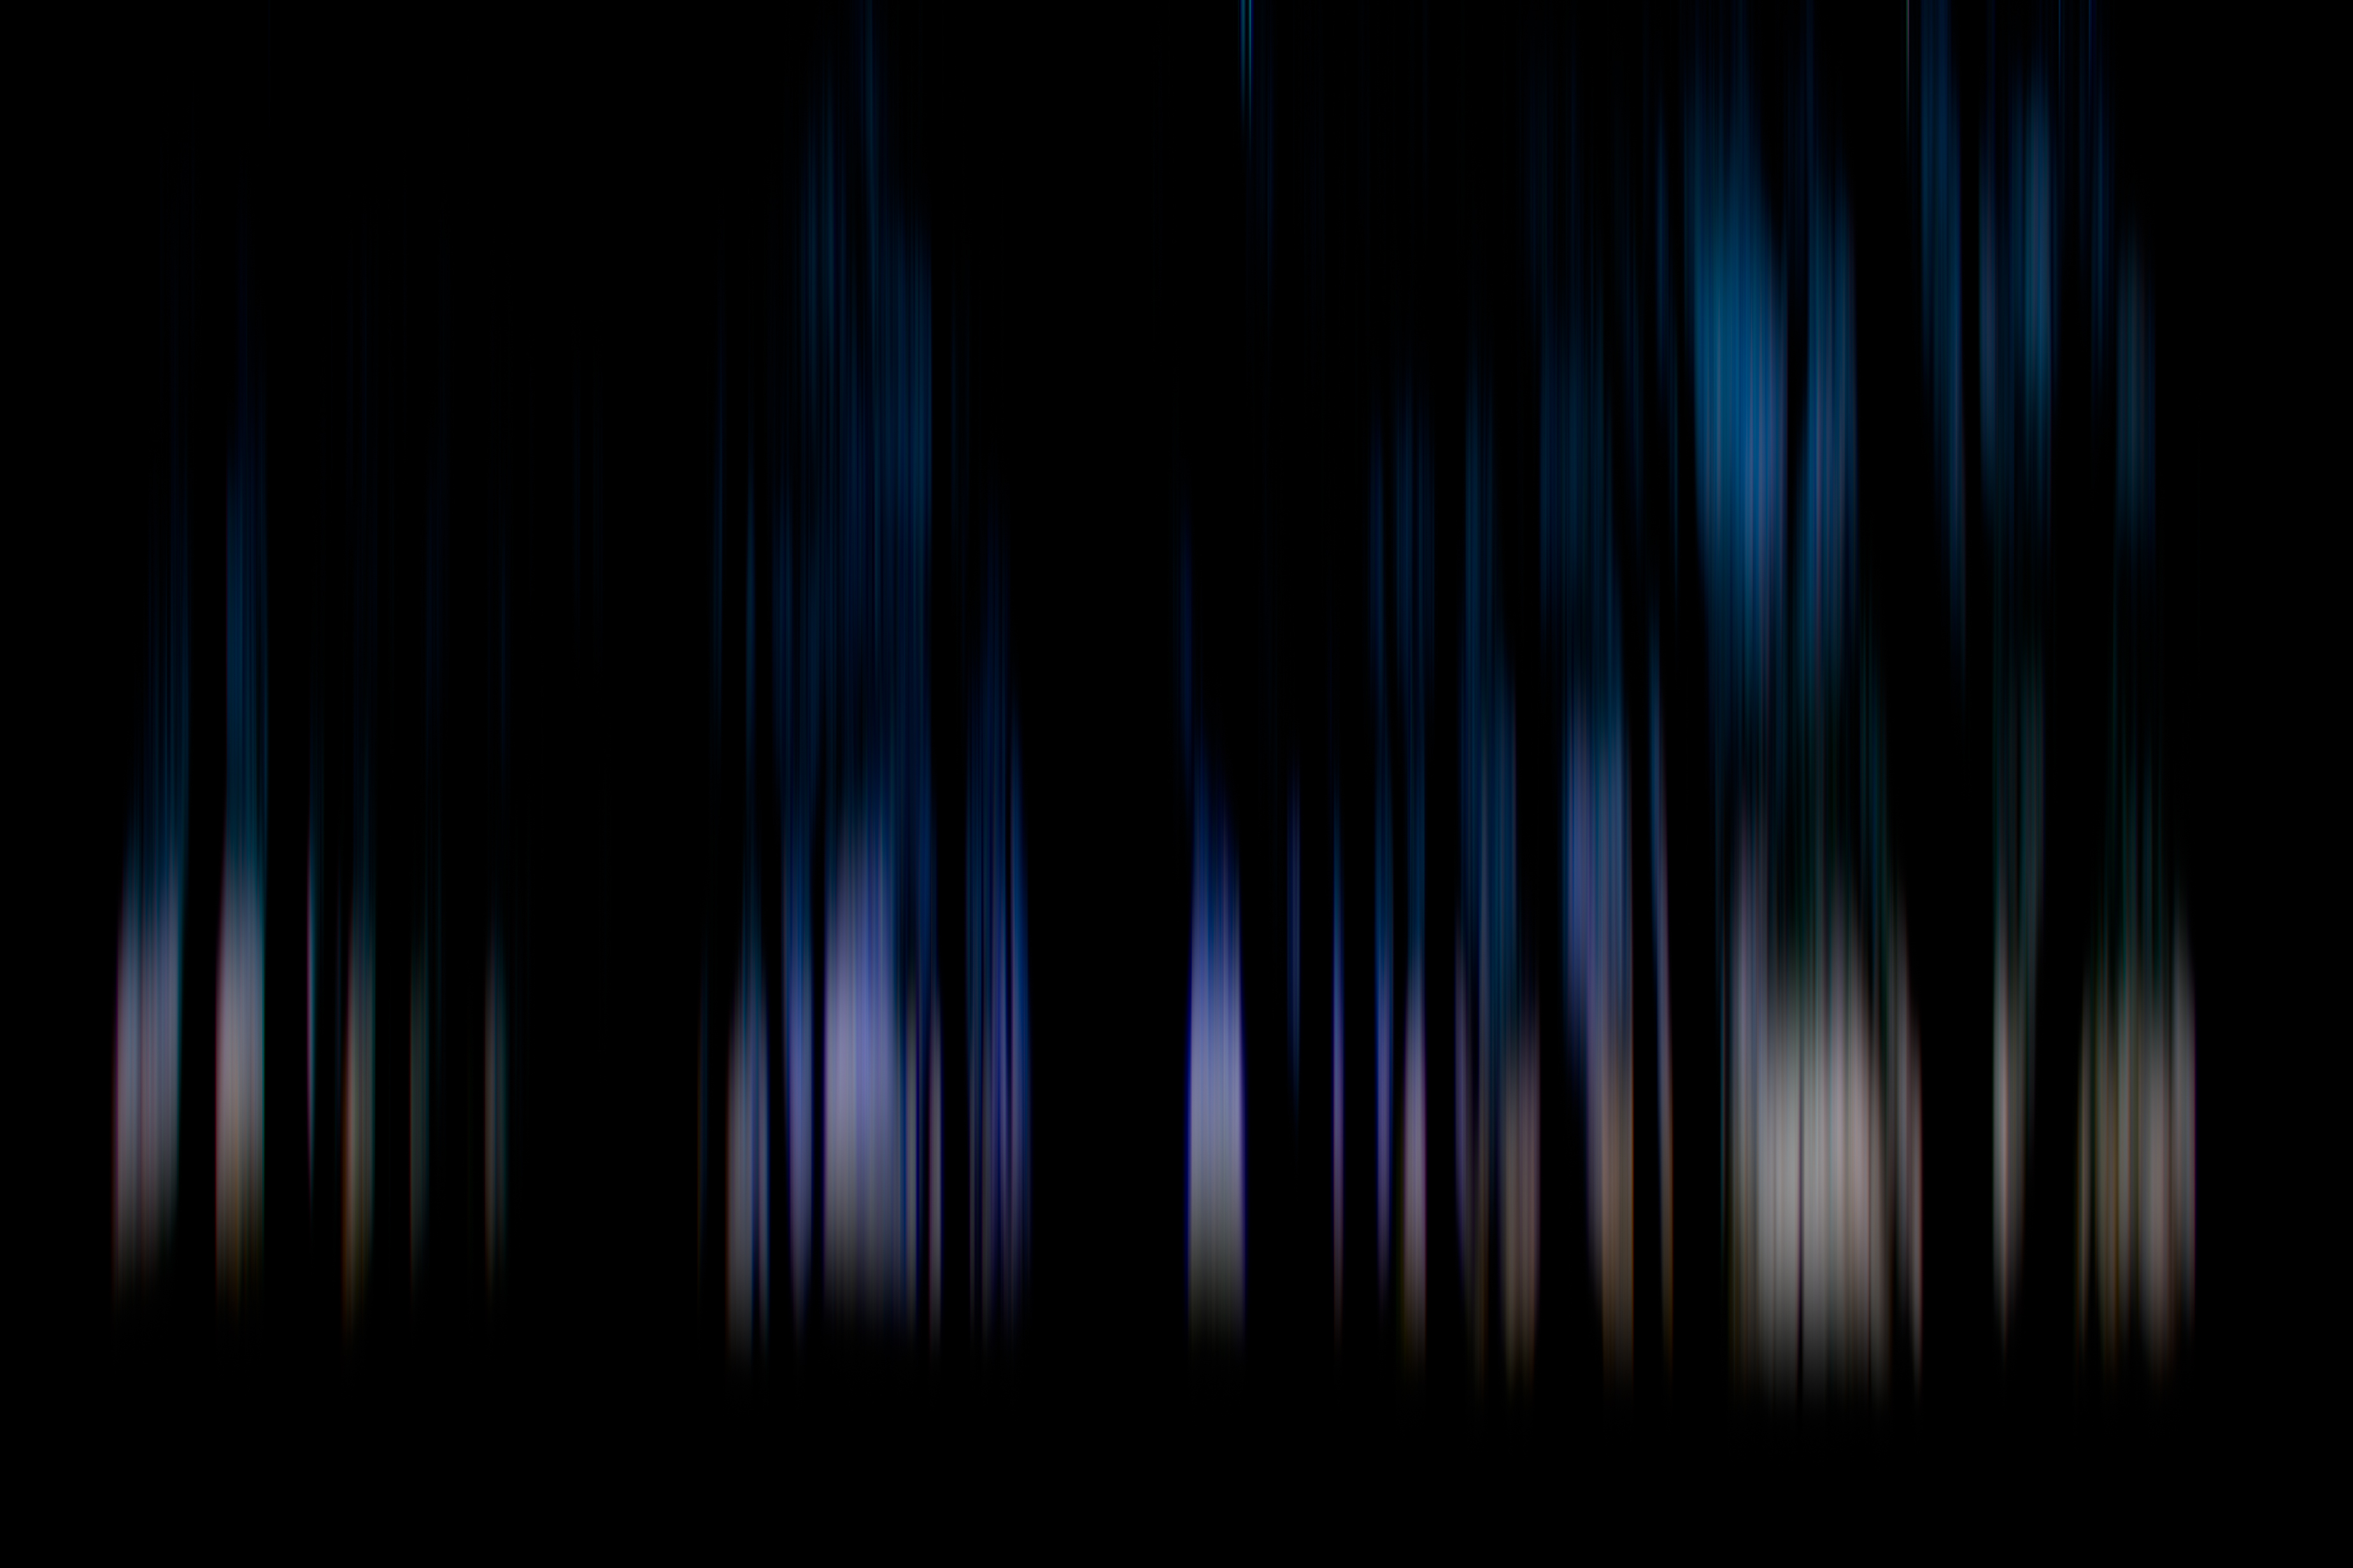 Blue Light Through Forest Trees Silhouette